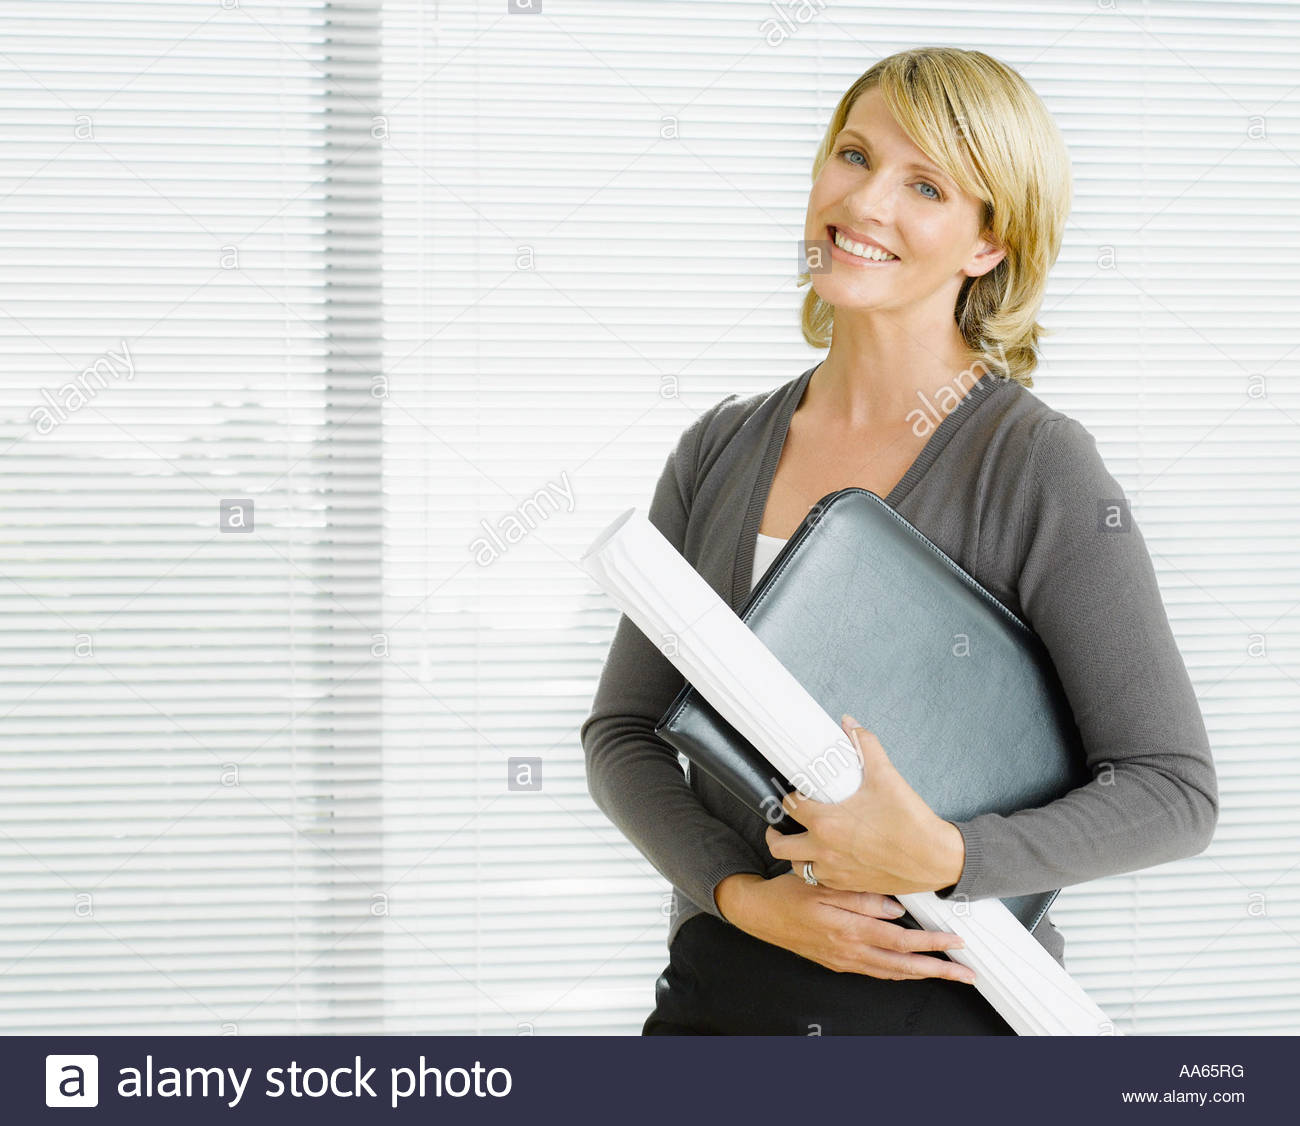 Businesswoman with blueprints - Stock Image